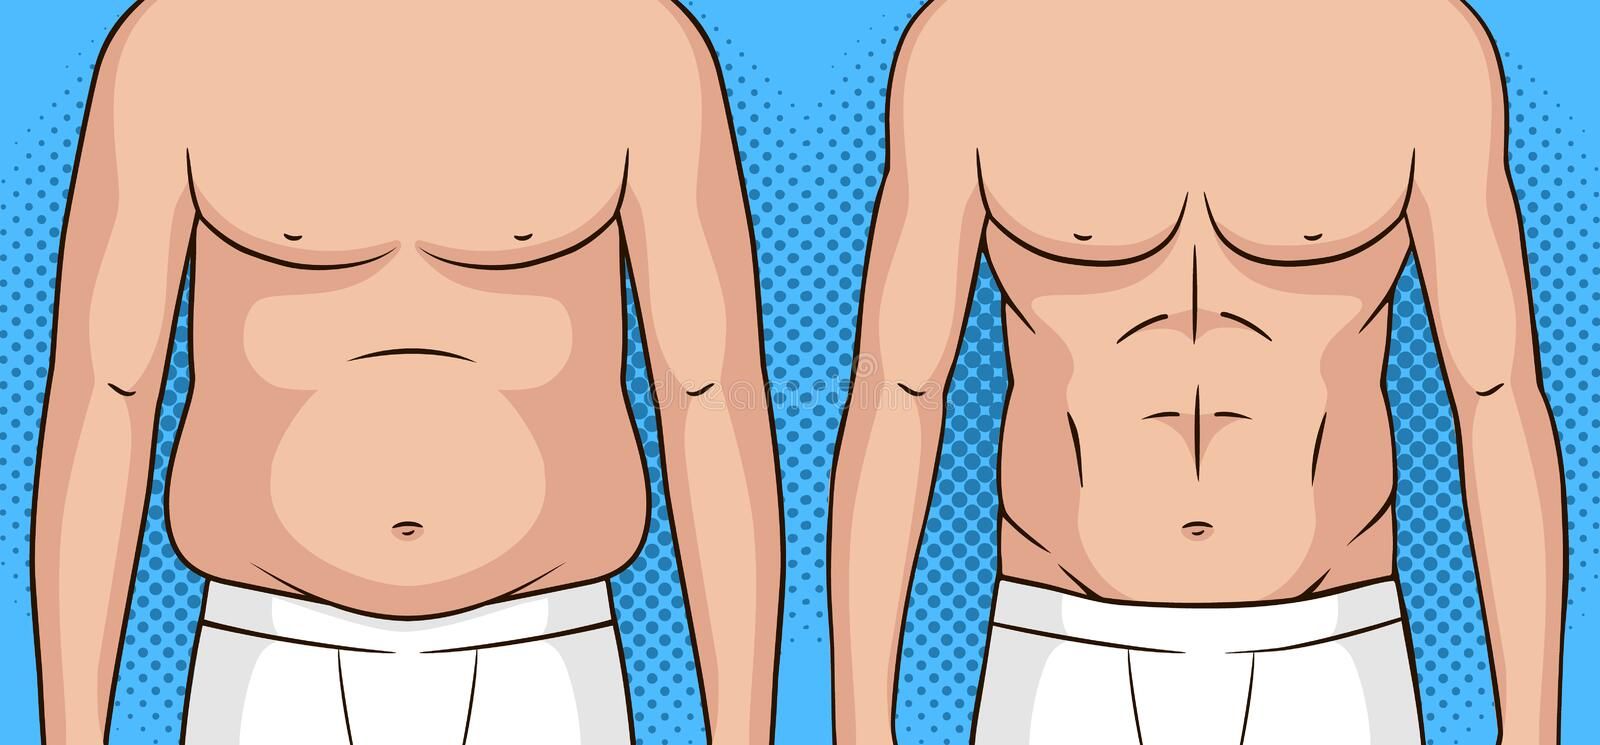 Color vector pop art style illustration of a man before and after weight loss. Flat stomach against the fat belly. Poster about healthy eating and lifestyle stock illustration